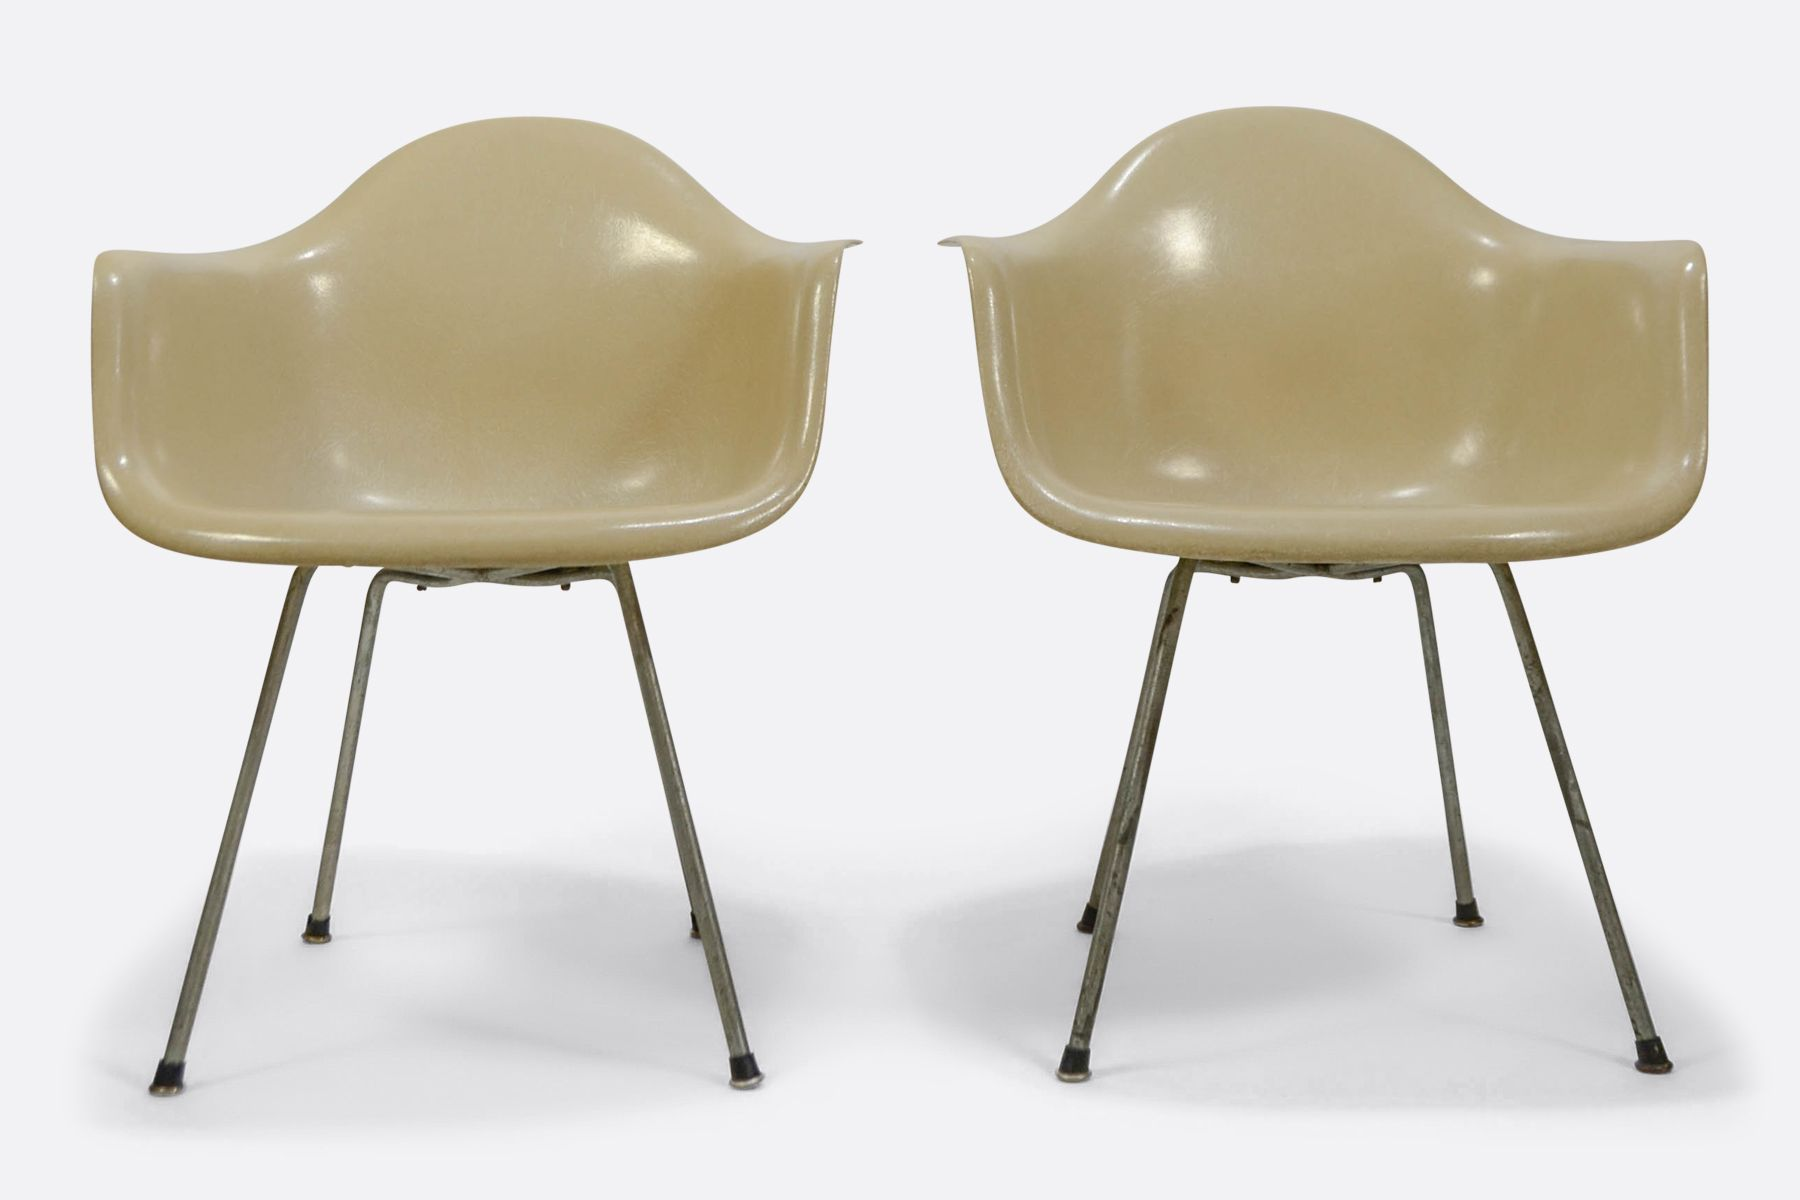 Eames DAX set of 2 Off White Zenith Plastic1 in 2019